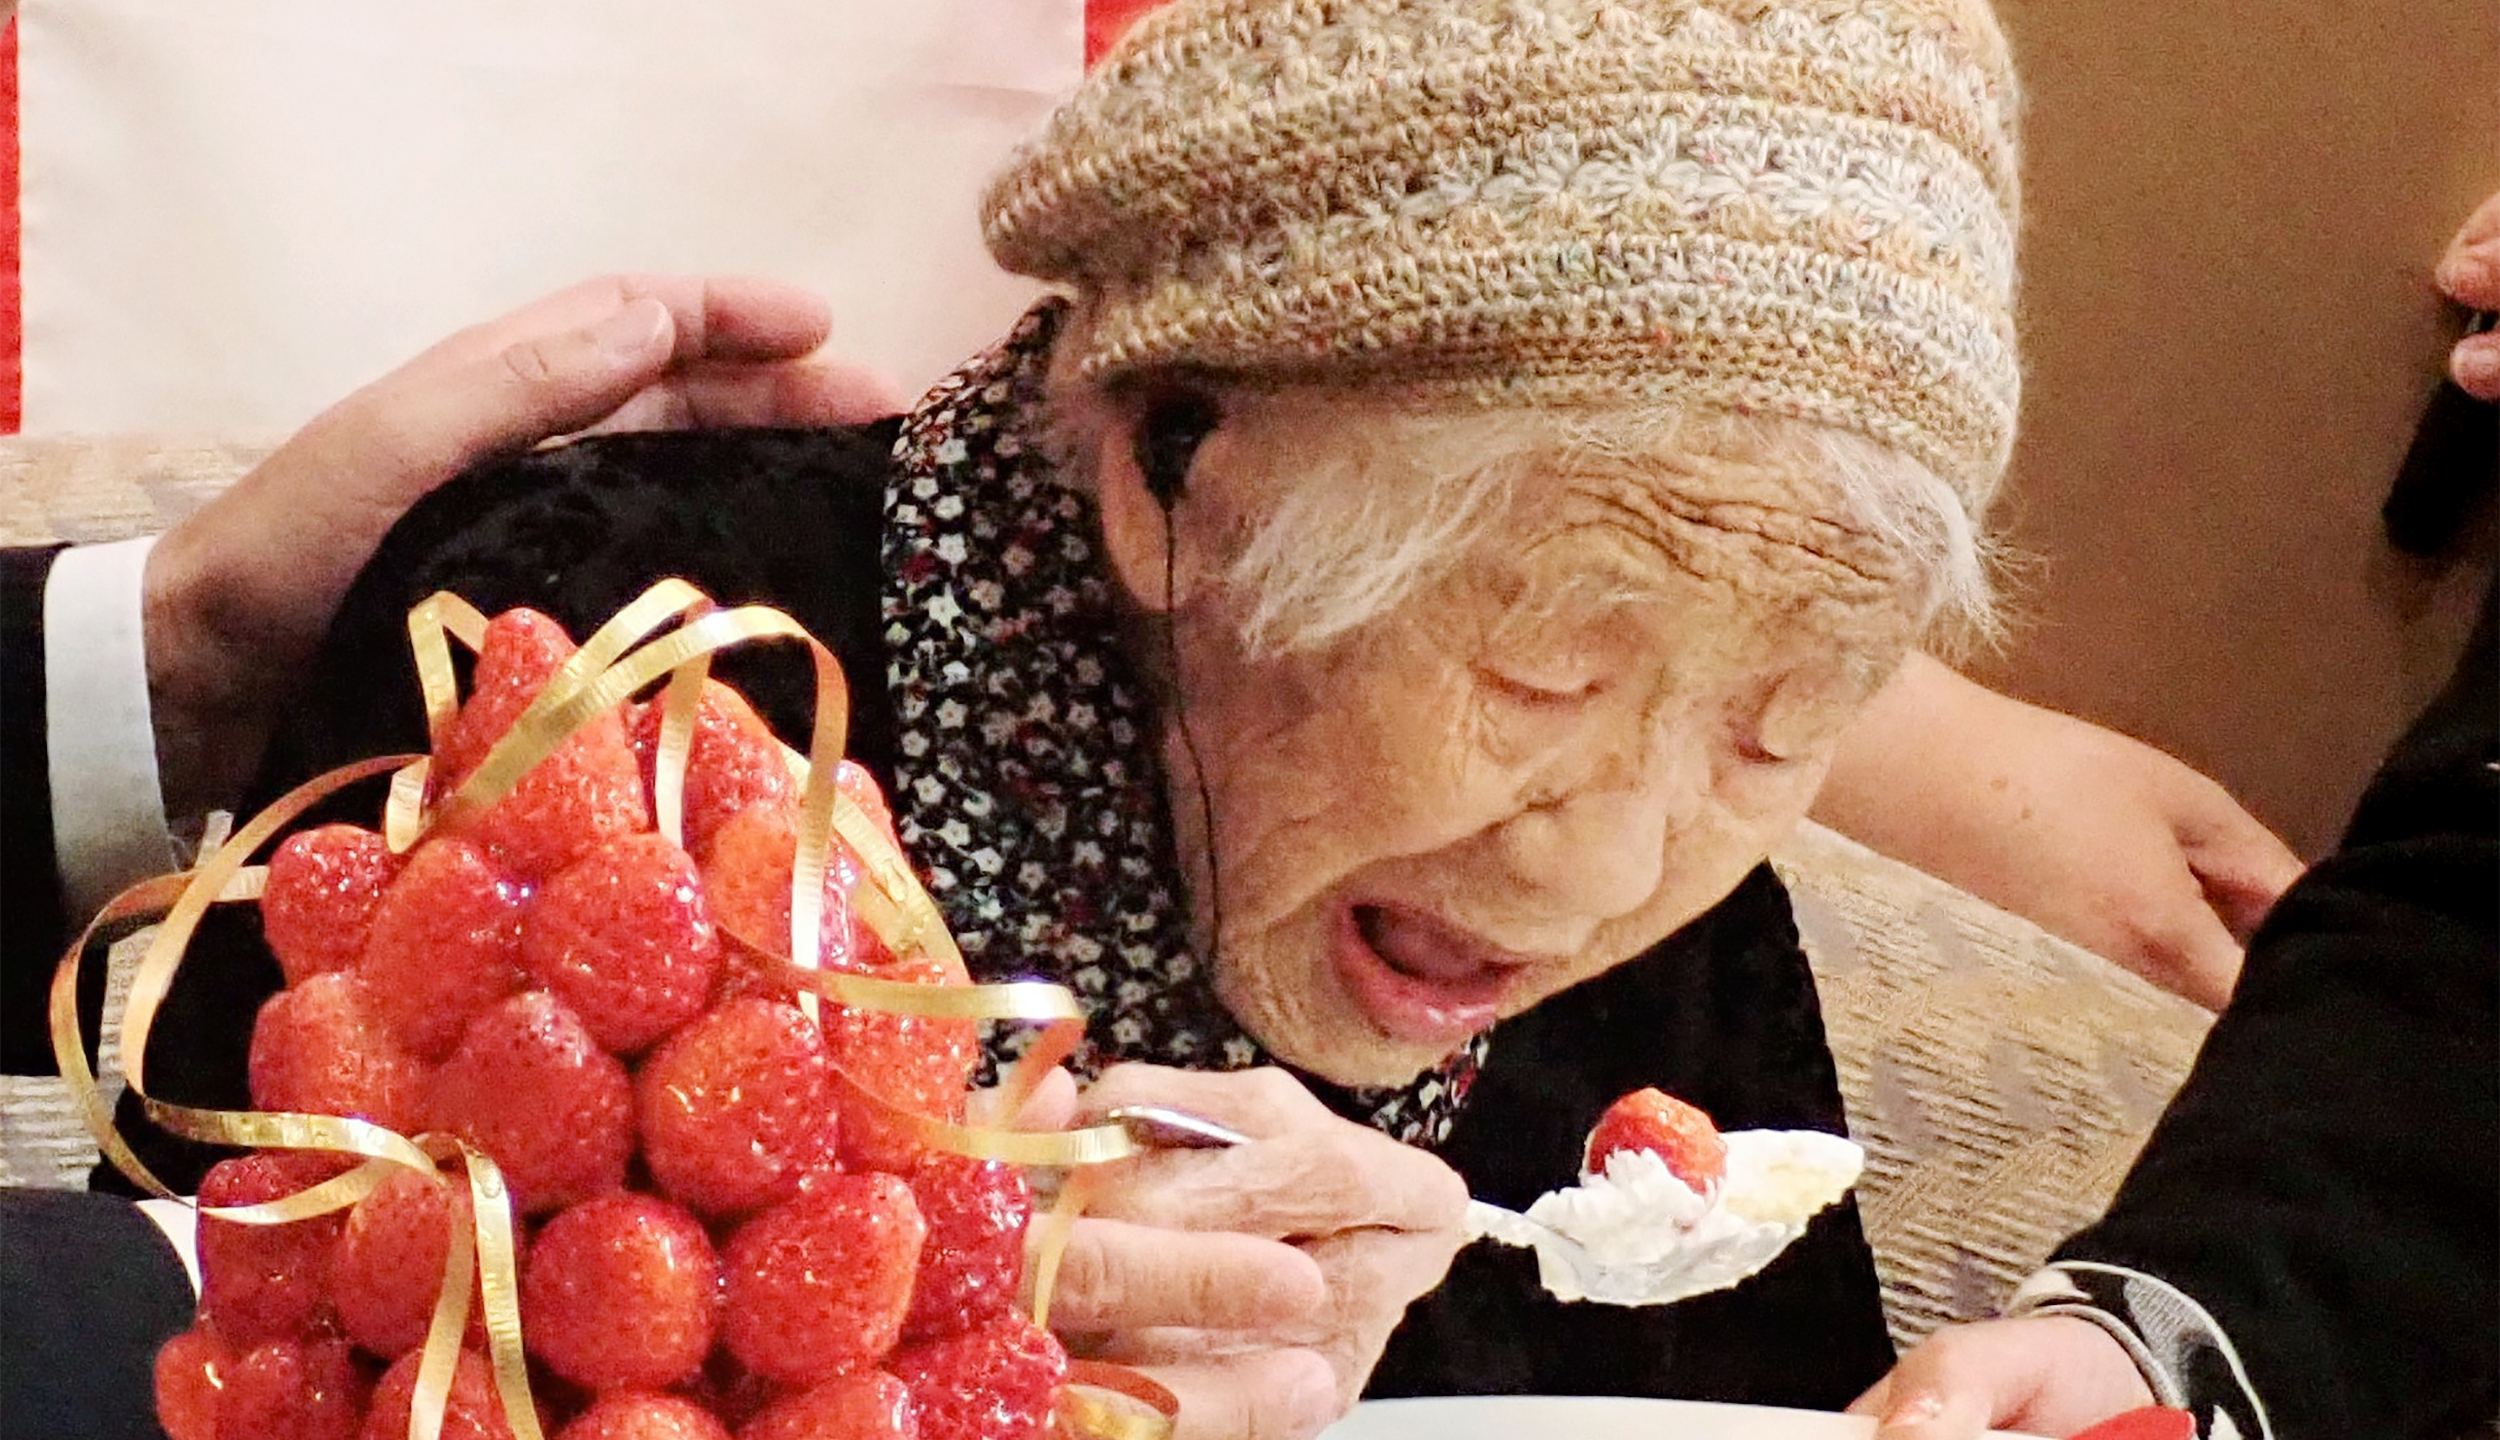 Kane Tanaka, a 116-year-old Japanese woman, celebrates with the official recognition of Guinness World Records' world's oldest verified living person in Fukuoka on March 9, 2019. (Credit: JIJI PRESS/AFP/Getty Images)